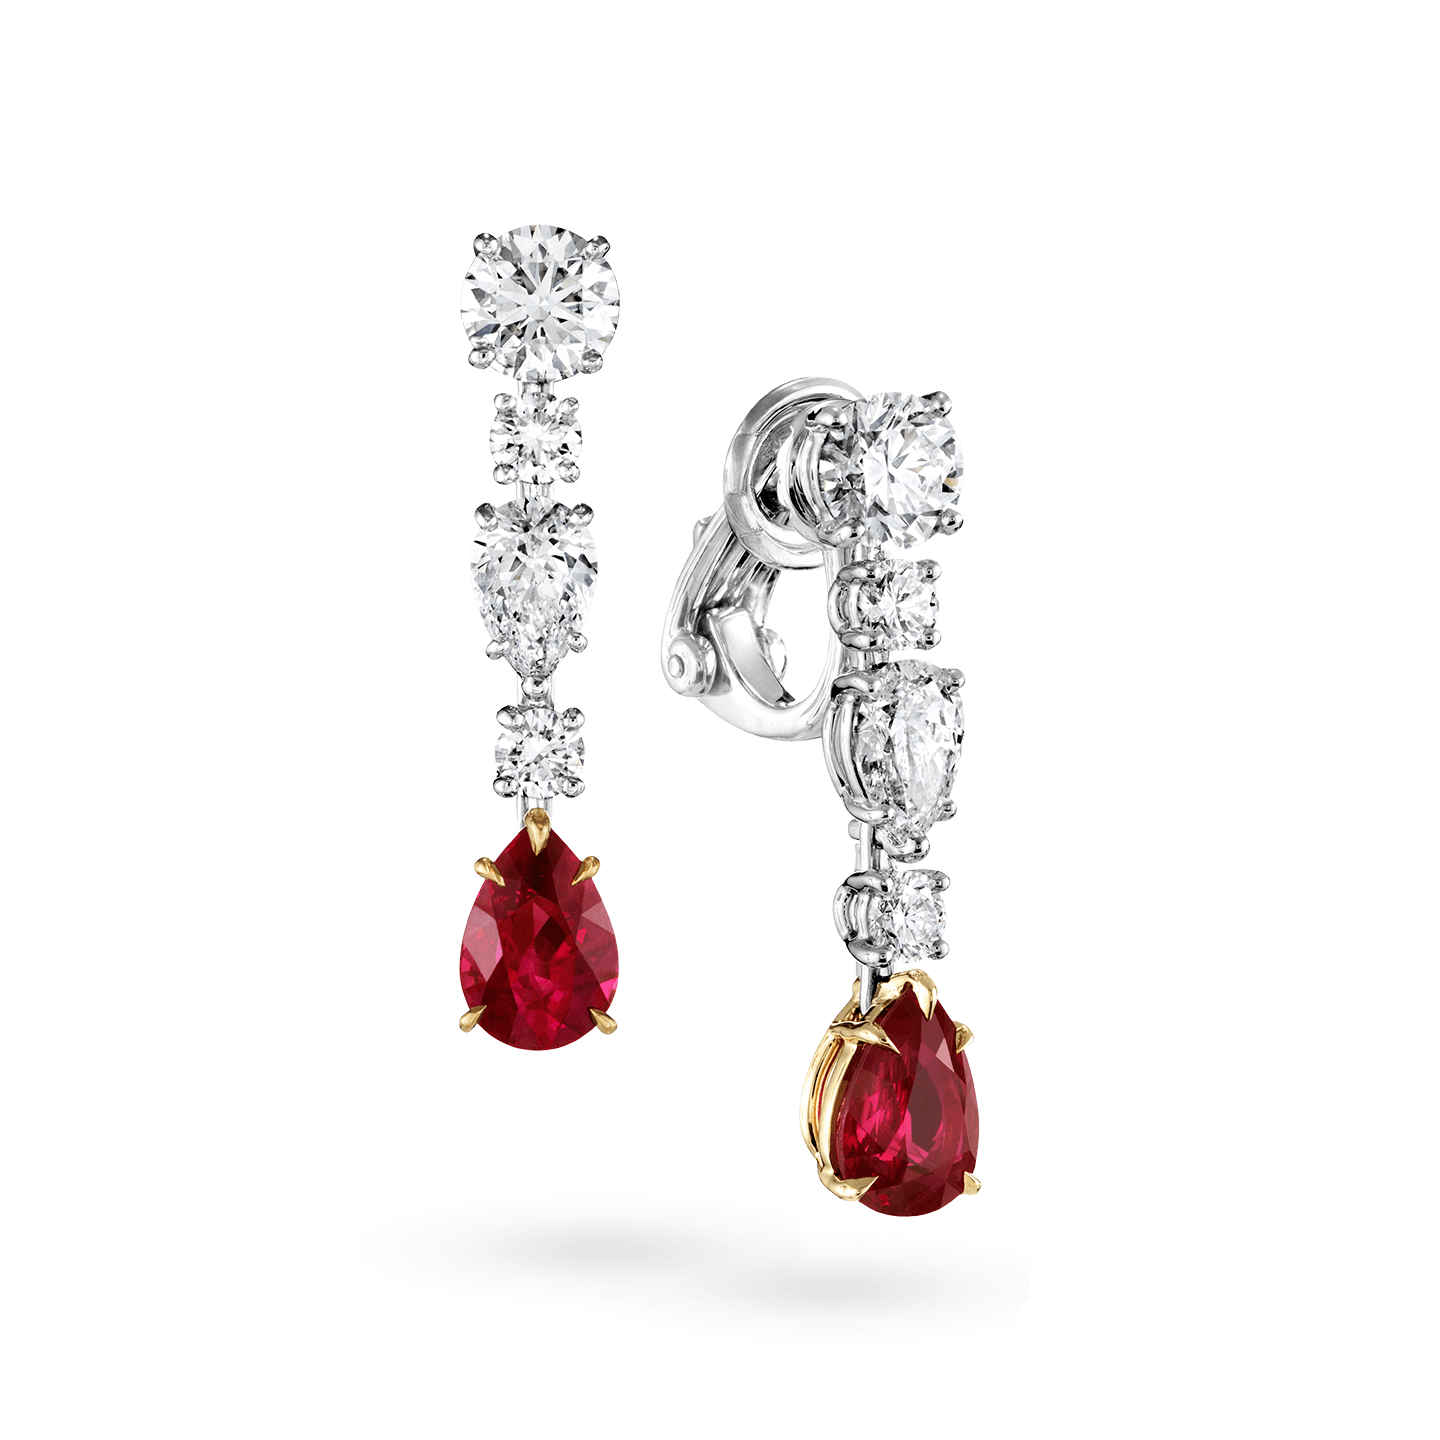 Diamond and Ruby Drop Earrings, Product Image 2